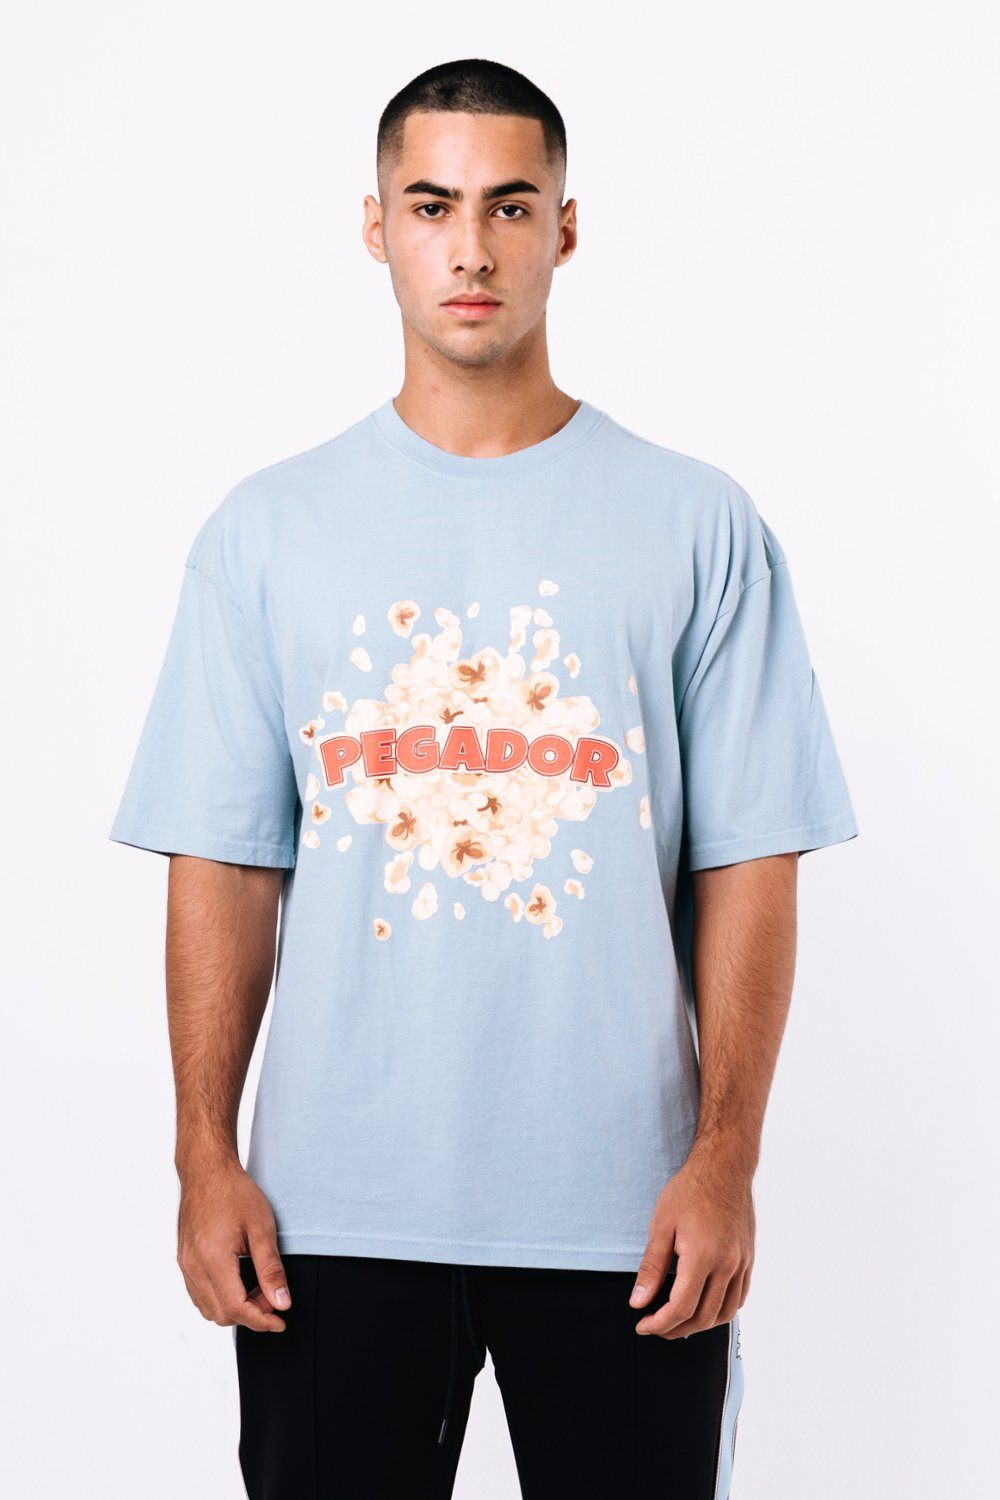 Wells Oversized Tee Washed Baby Blue T-SHIRT PEGADOR